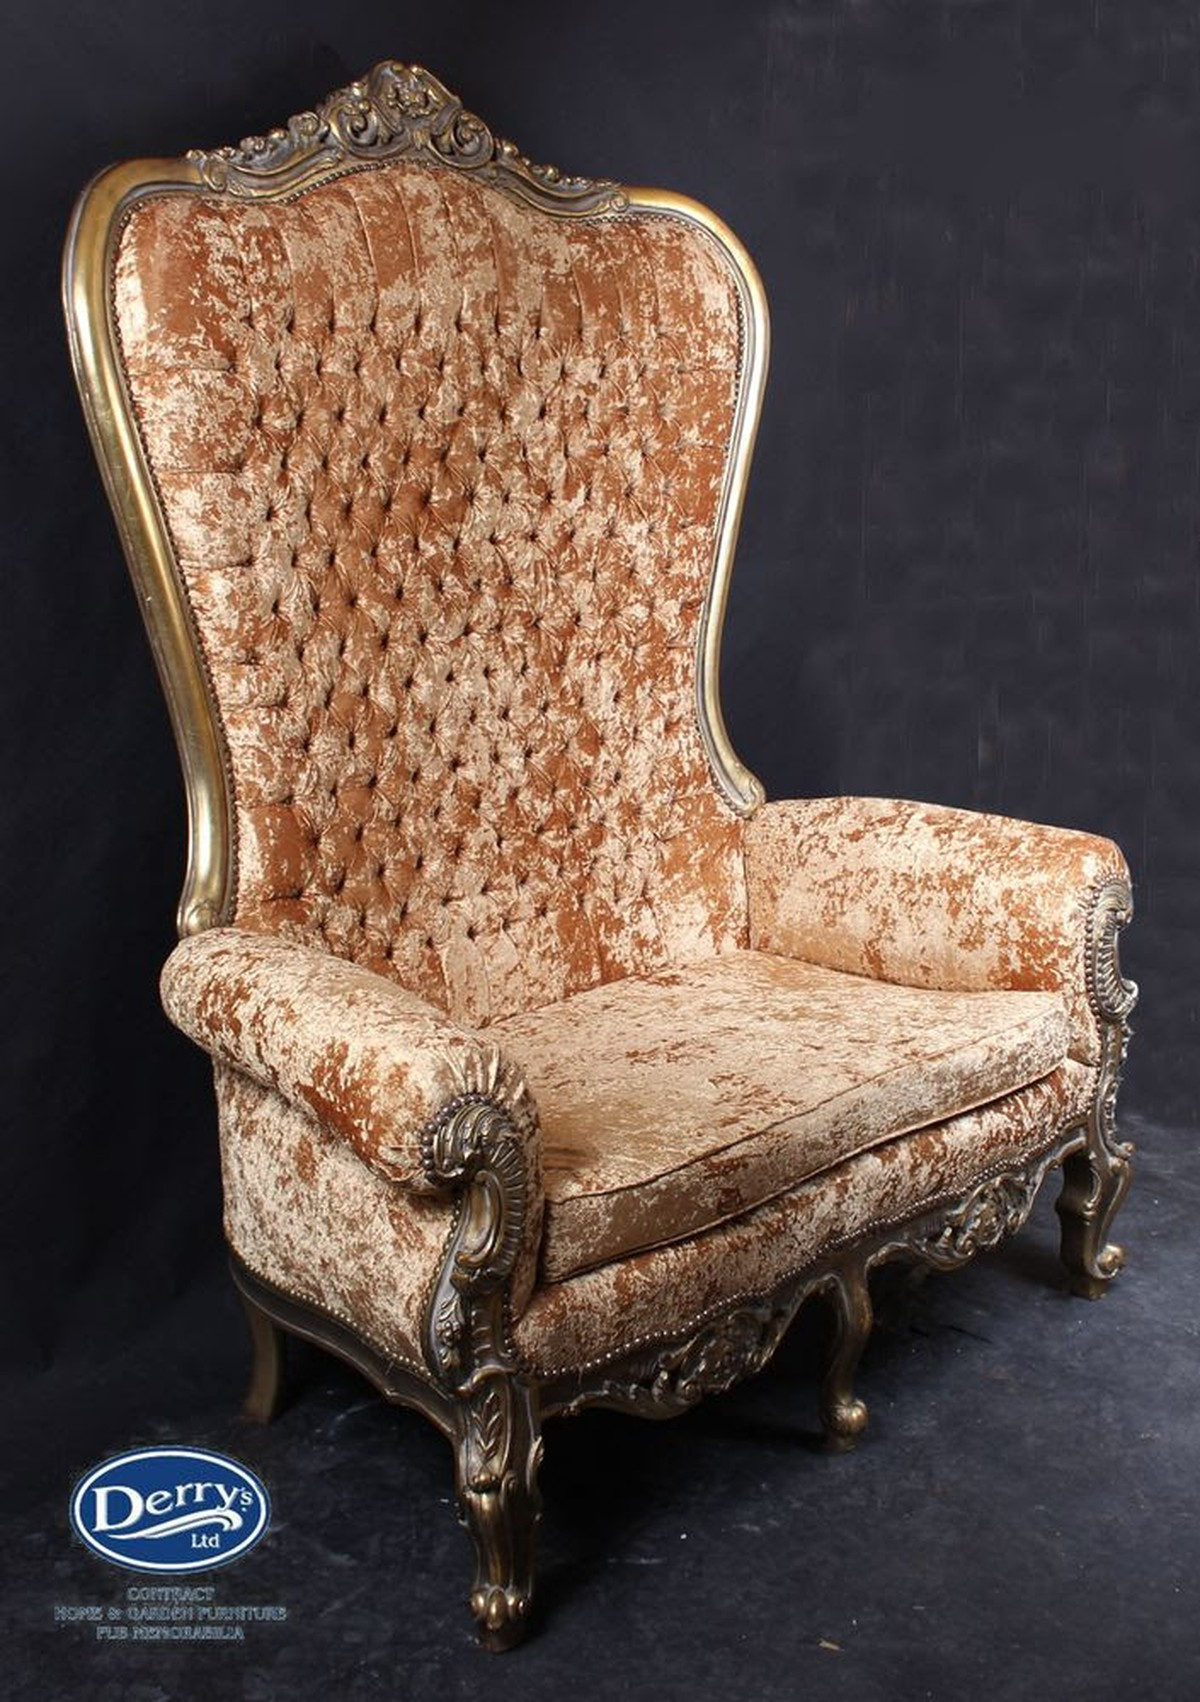 Secondhand Prop Shop Thrones And Wedding Chairs Tall